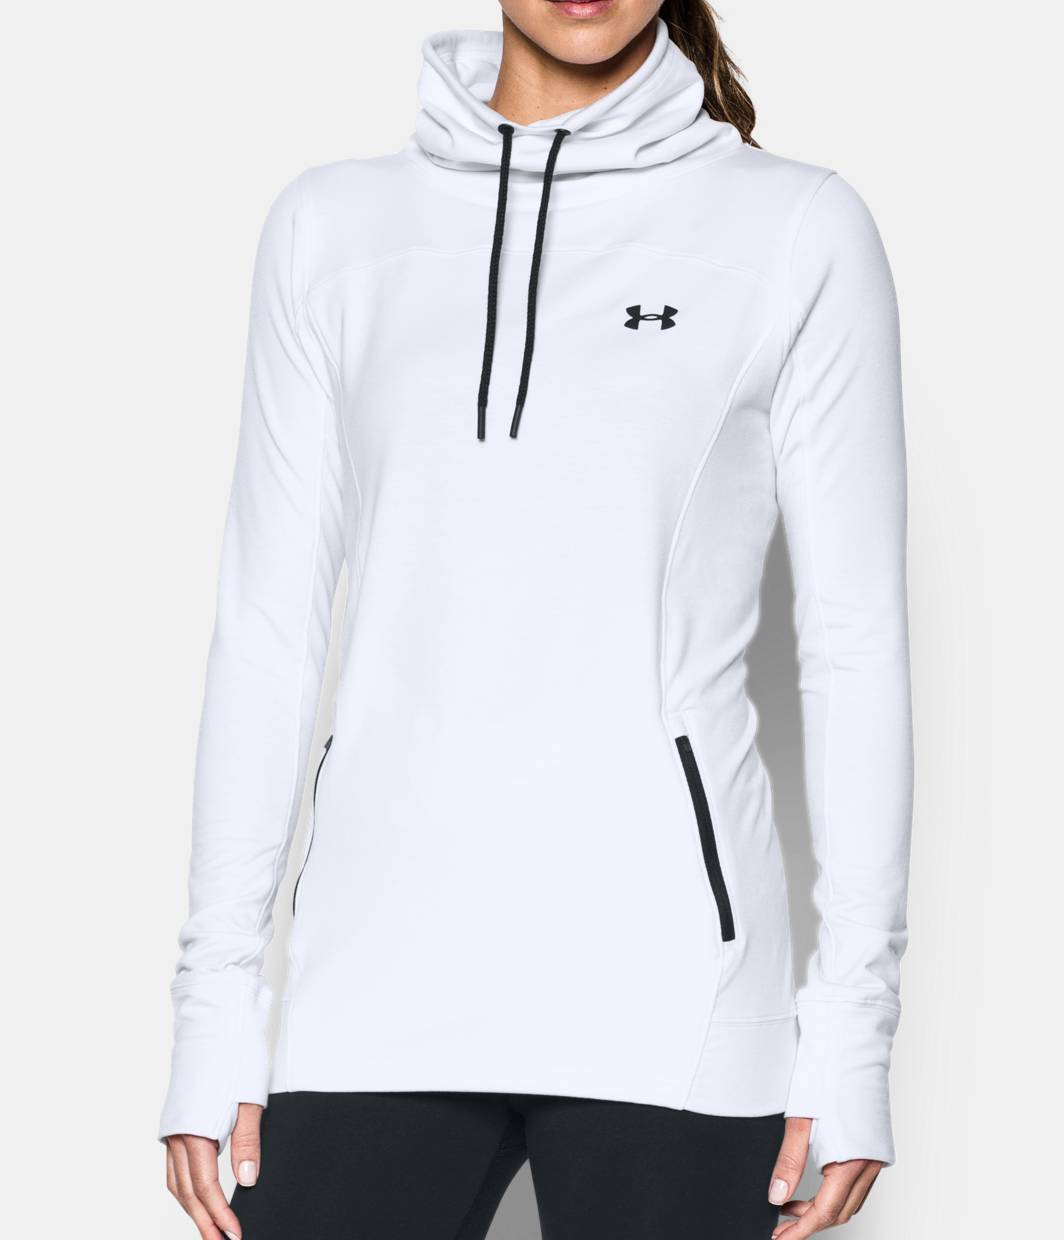 Women's Fleece Clothing & Jackets | Under Armour US